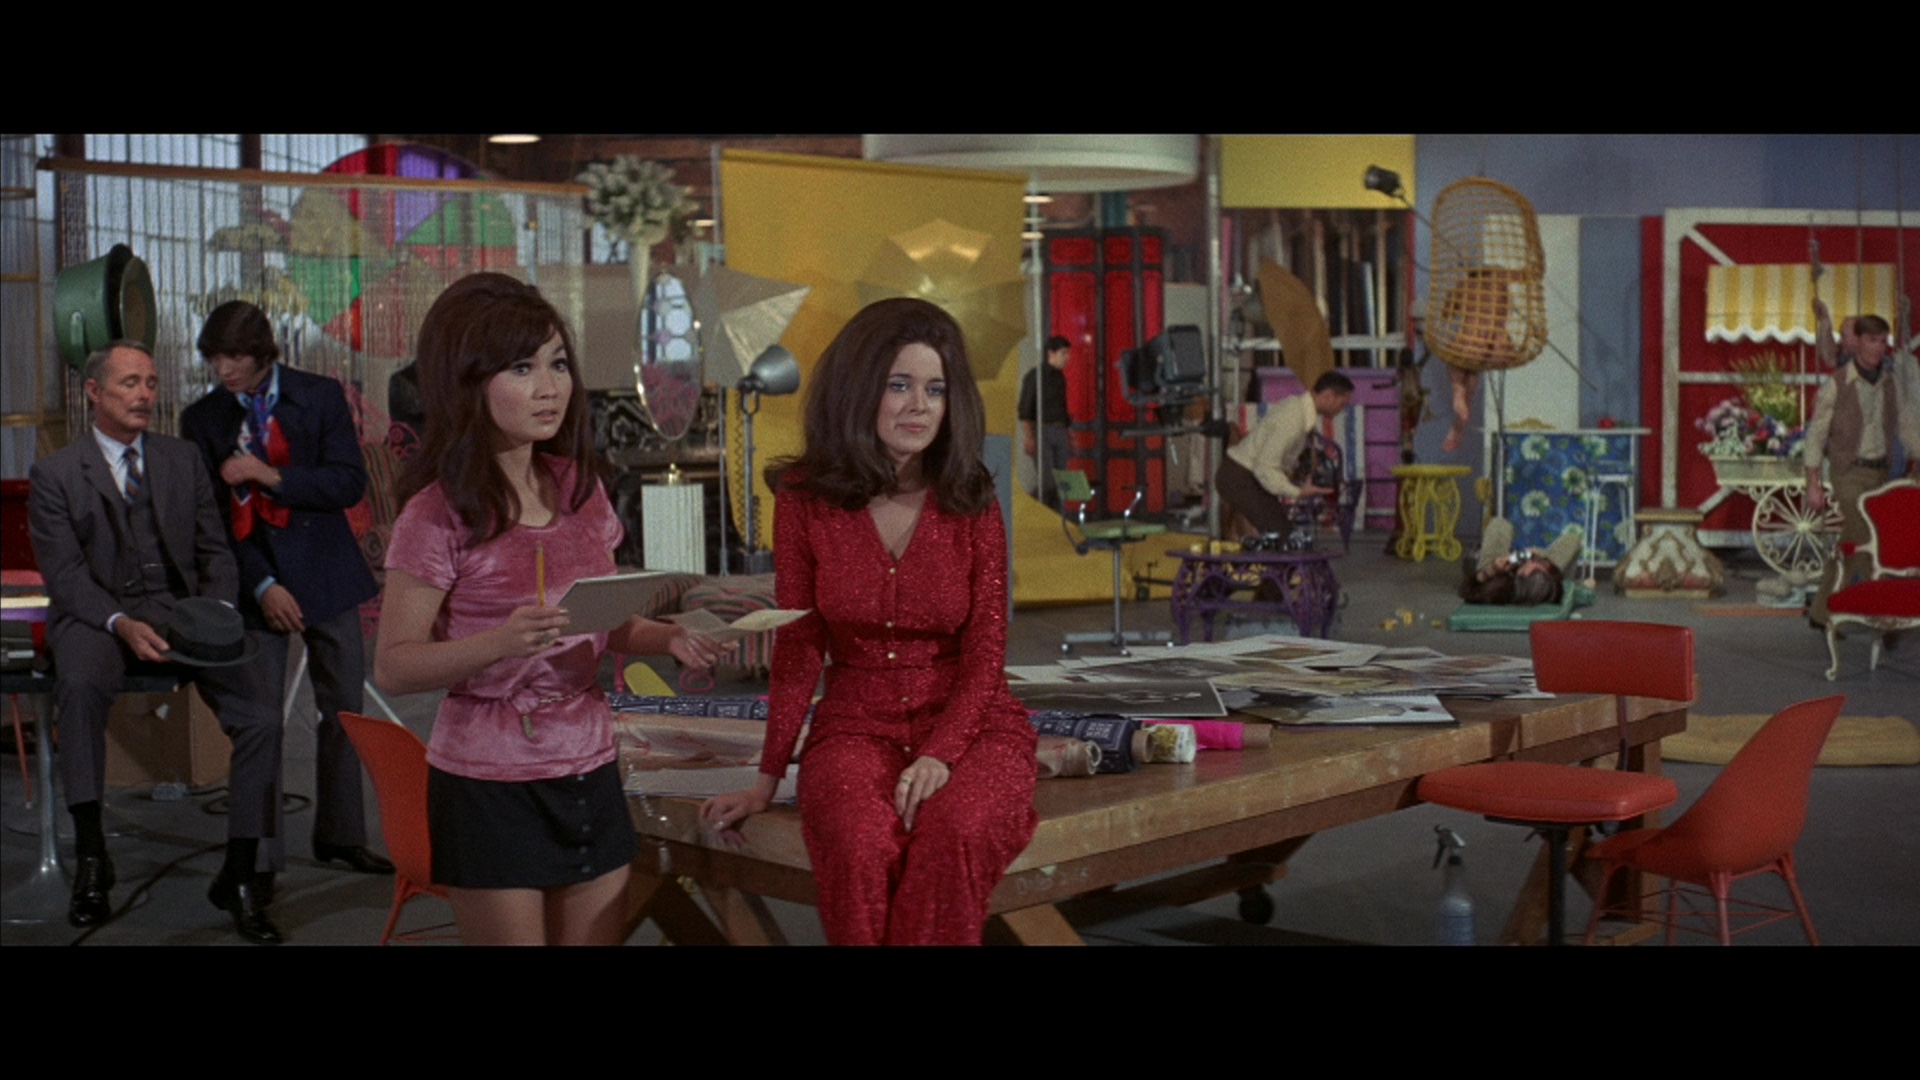 Beyond the Valley of the Dolls - 447.1KB